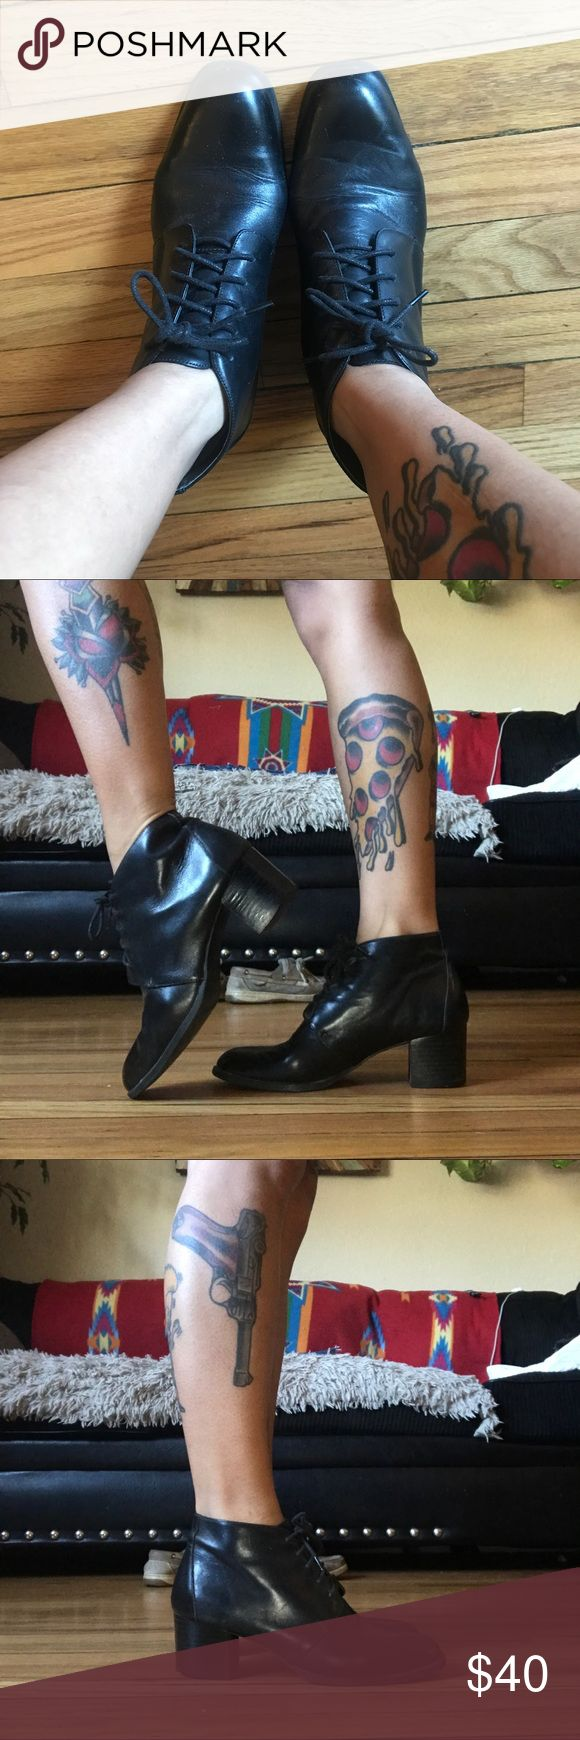 80s Vintage Ankle Boots 💥OFFERS ACCEPTED💥  ALSO: ▪️Items are always in good condition. ▪️Items are always listed as described, no returns. ▪️Ask questions before purchasing! Shoes Ankle Boots & Booties